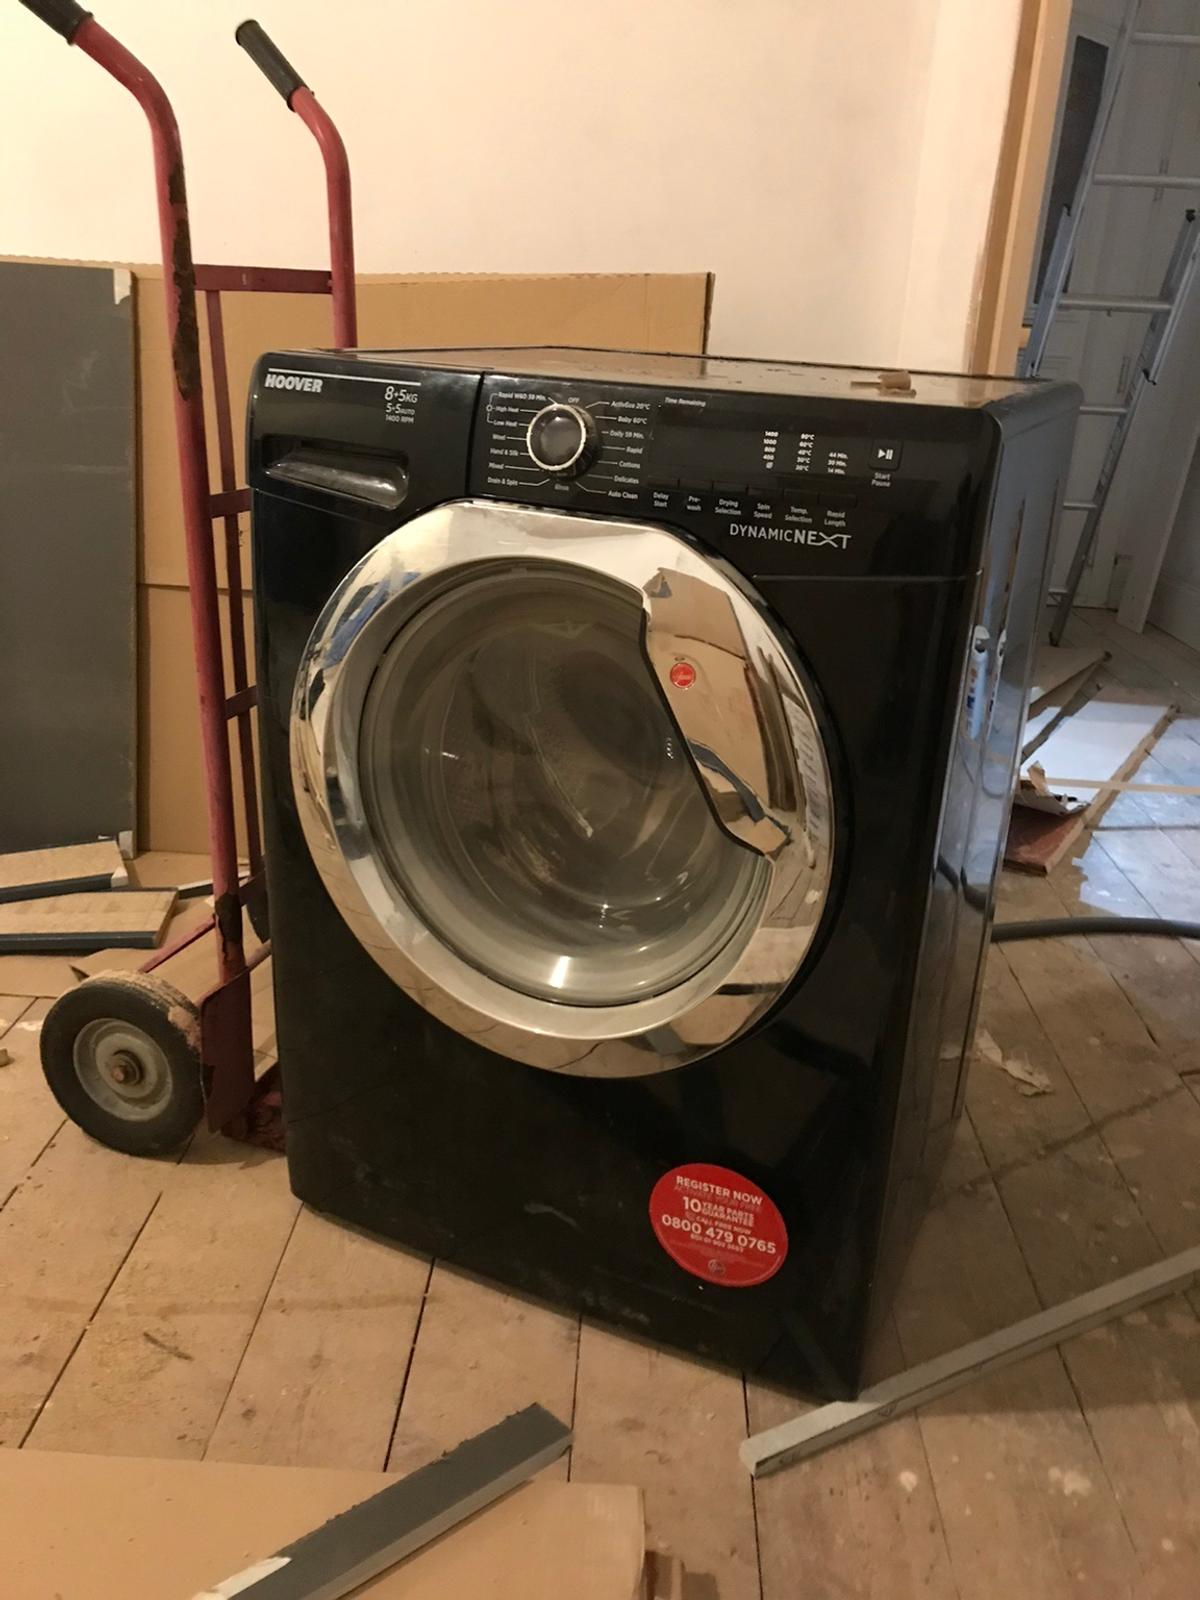 Hi, selling my washer dryer as I have no need for it anymore. £150ono Pick up from Orpington